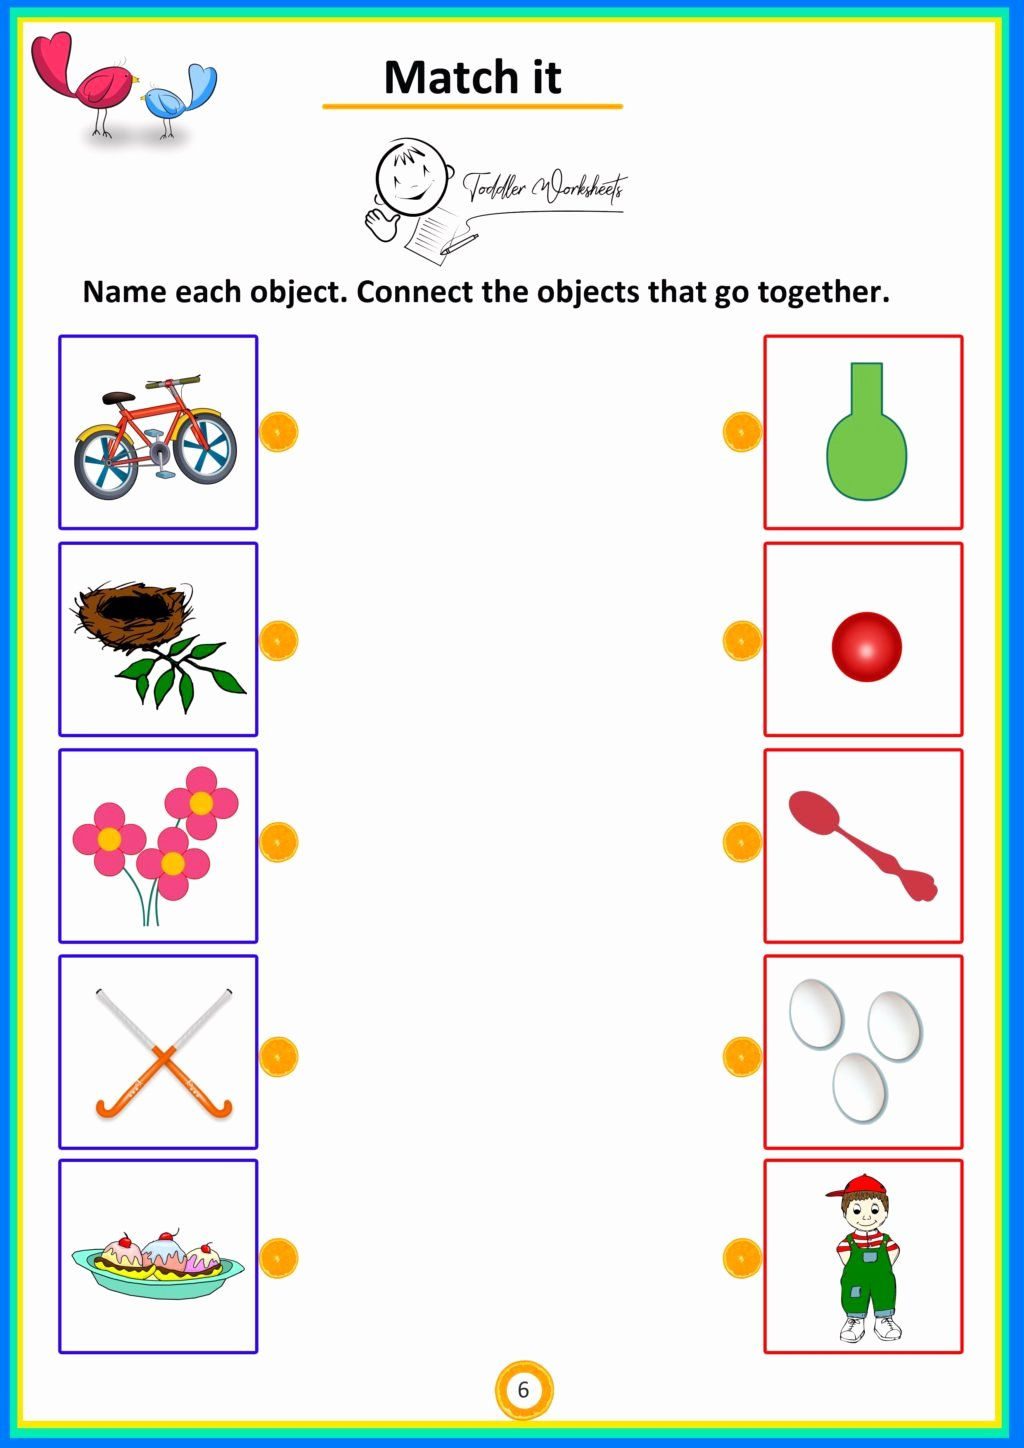 Matching Objects Worksheets for Preschoolers Unique Worksheet Worksheet Match It Objects toddlers Worksheets